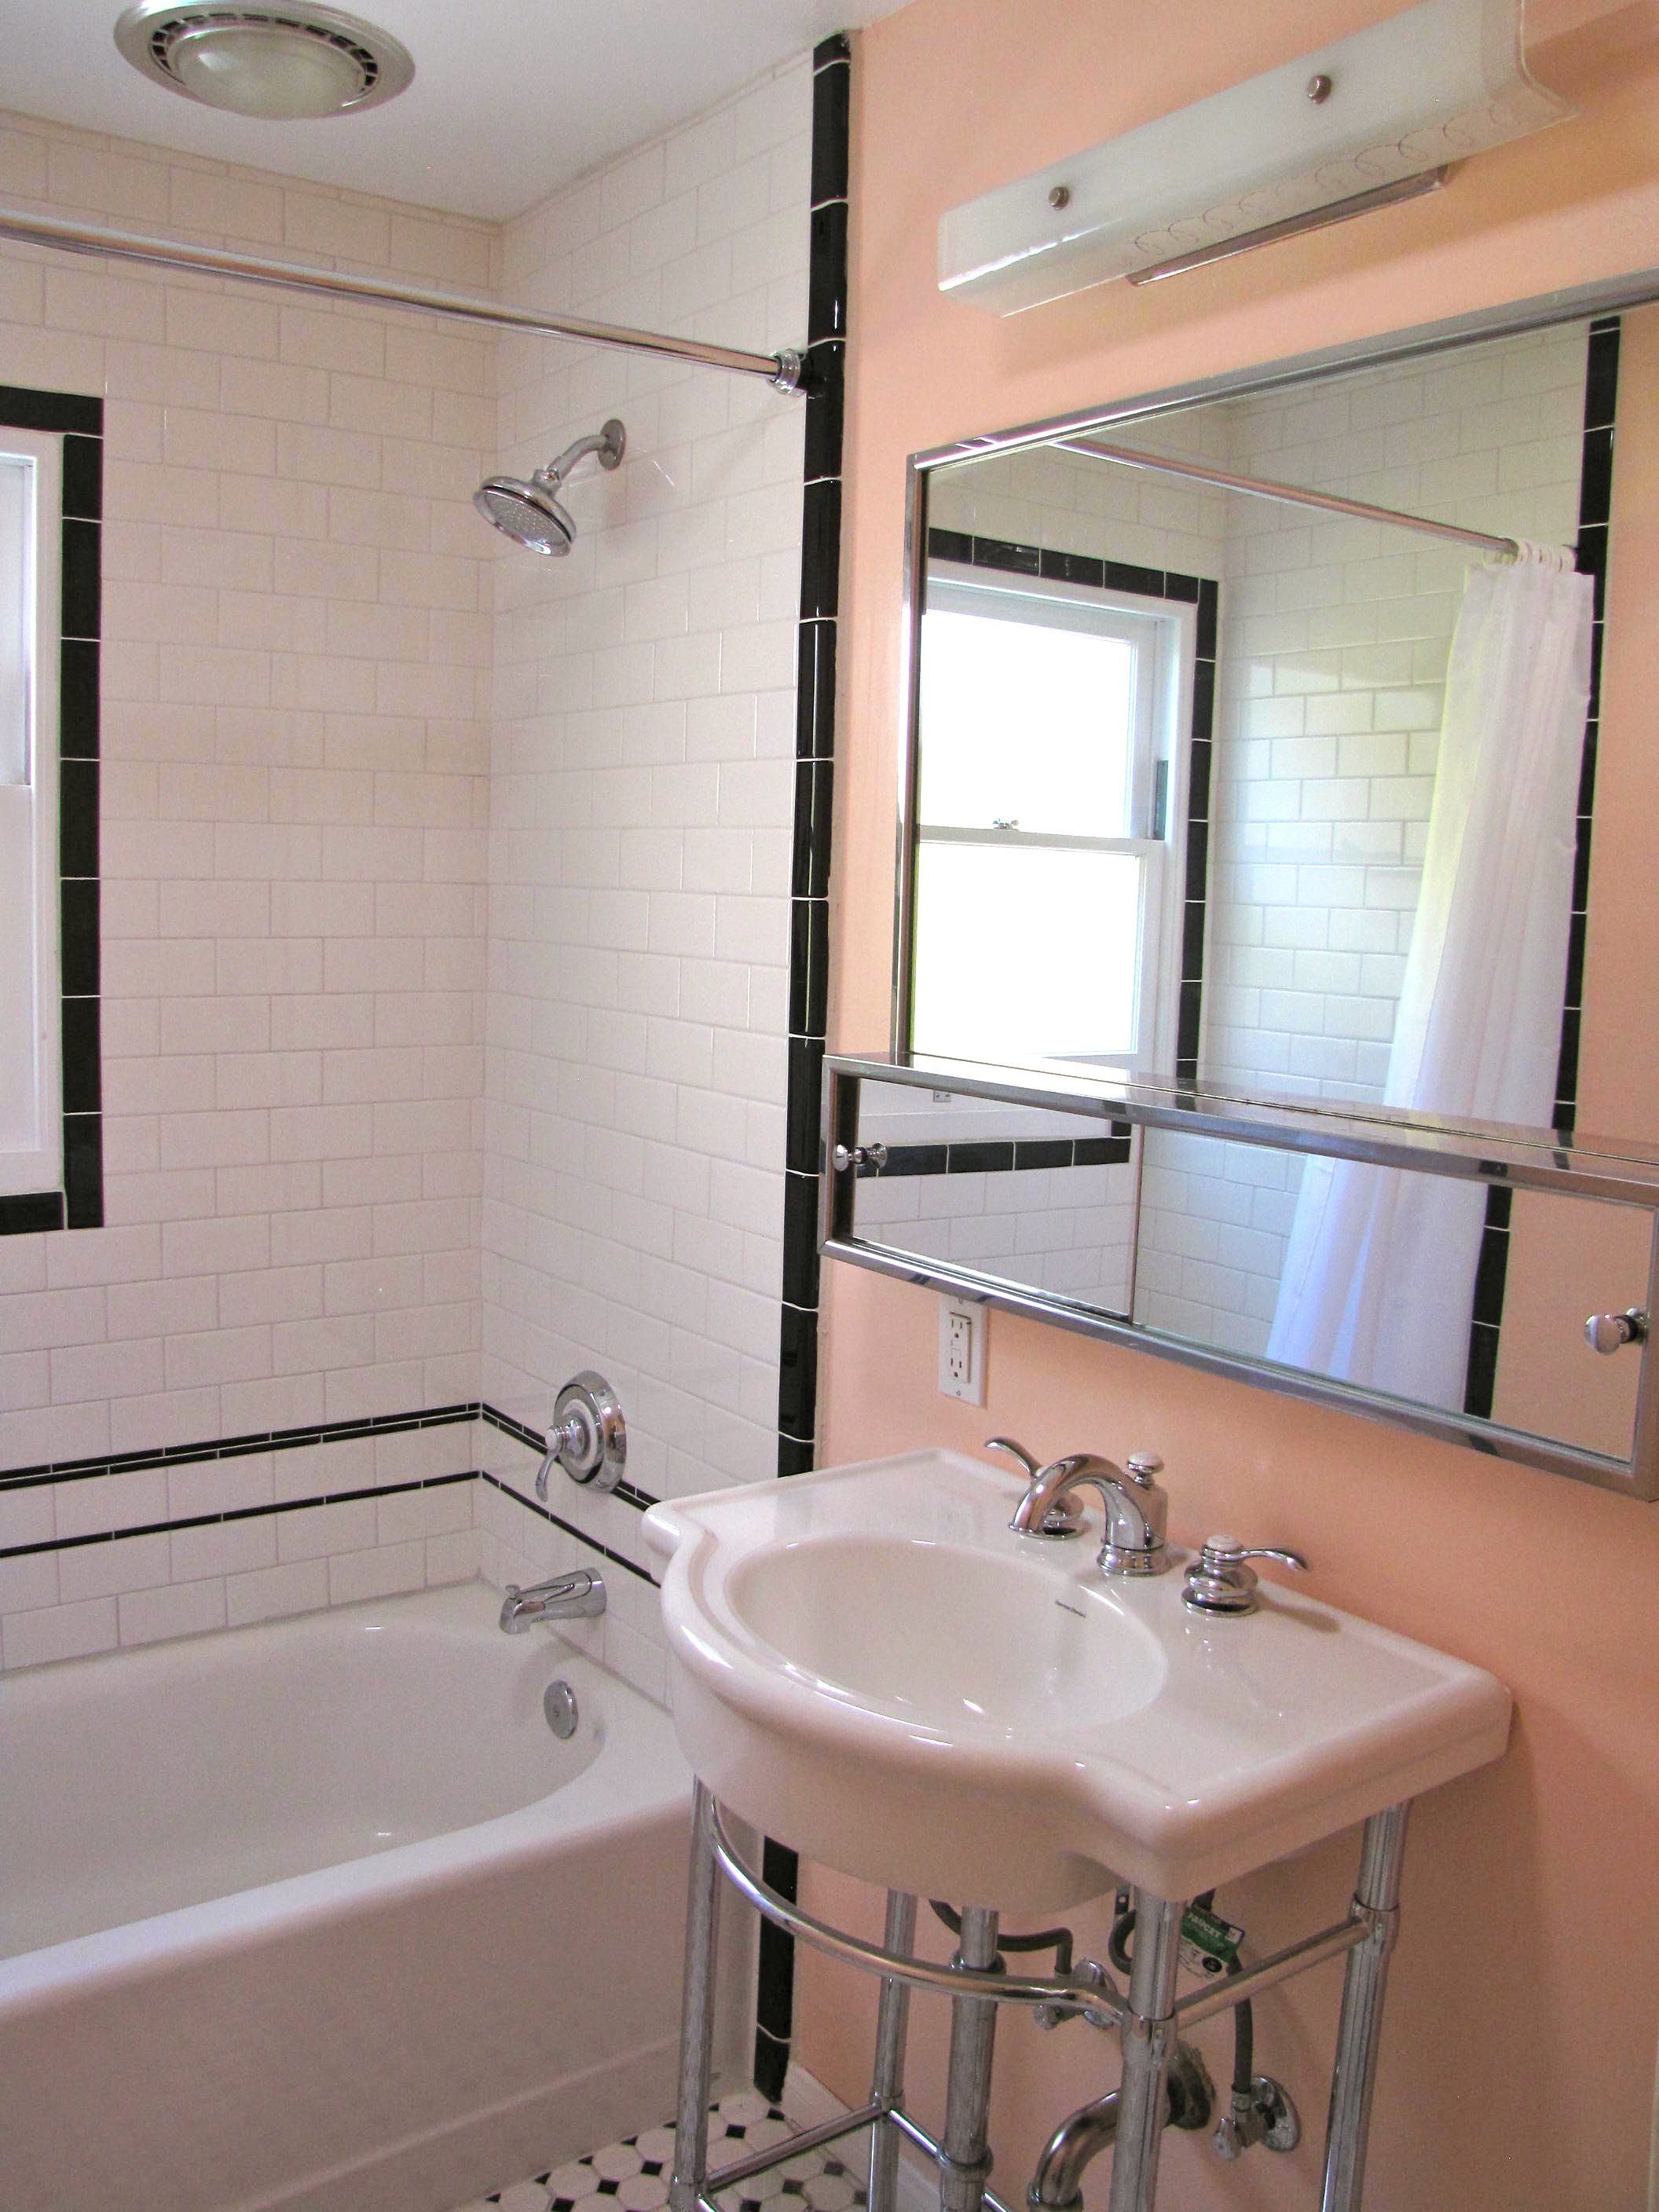 1950 S Bathroom The Fruit Of Our Labor The New And